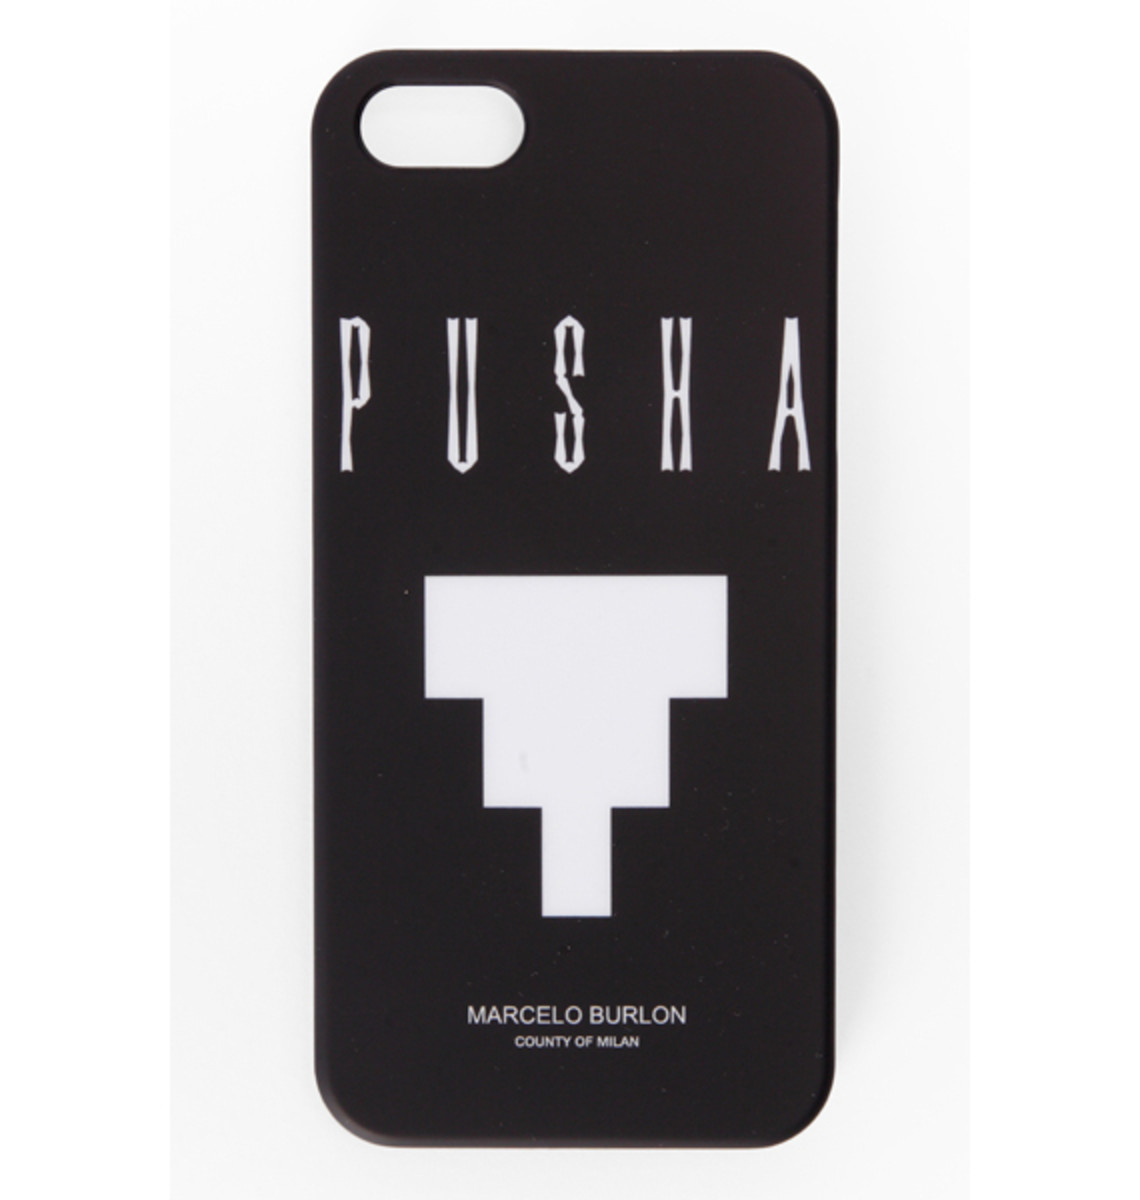 Marcelo Burlon x Pusha T - County of Pusha Collection Preview 09